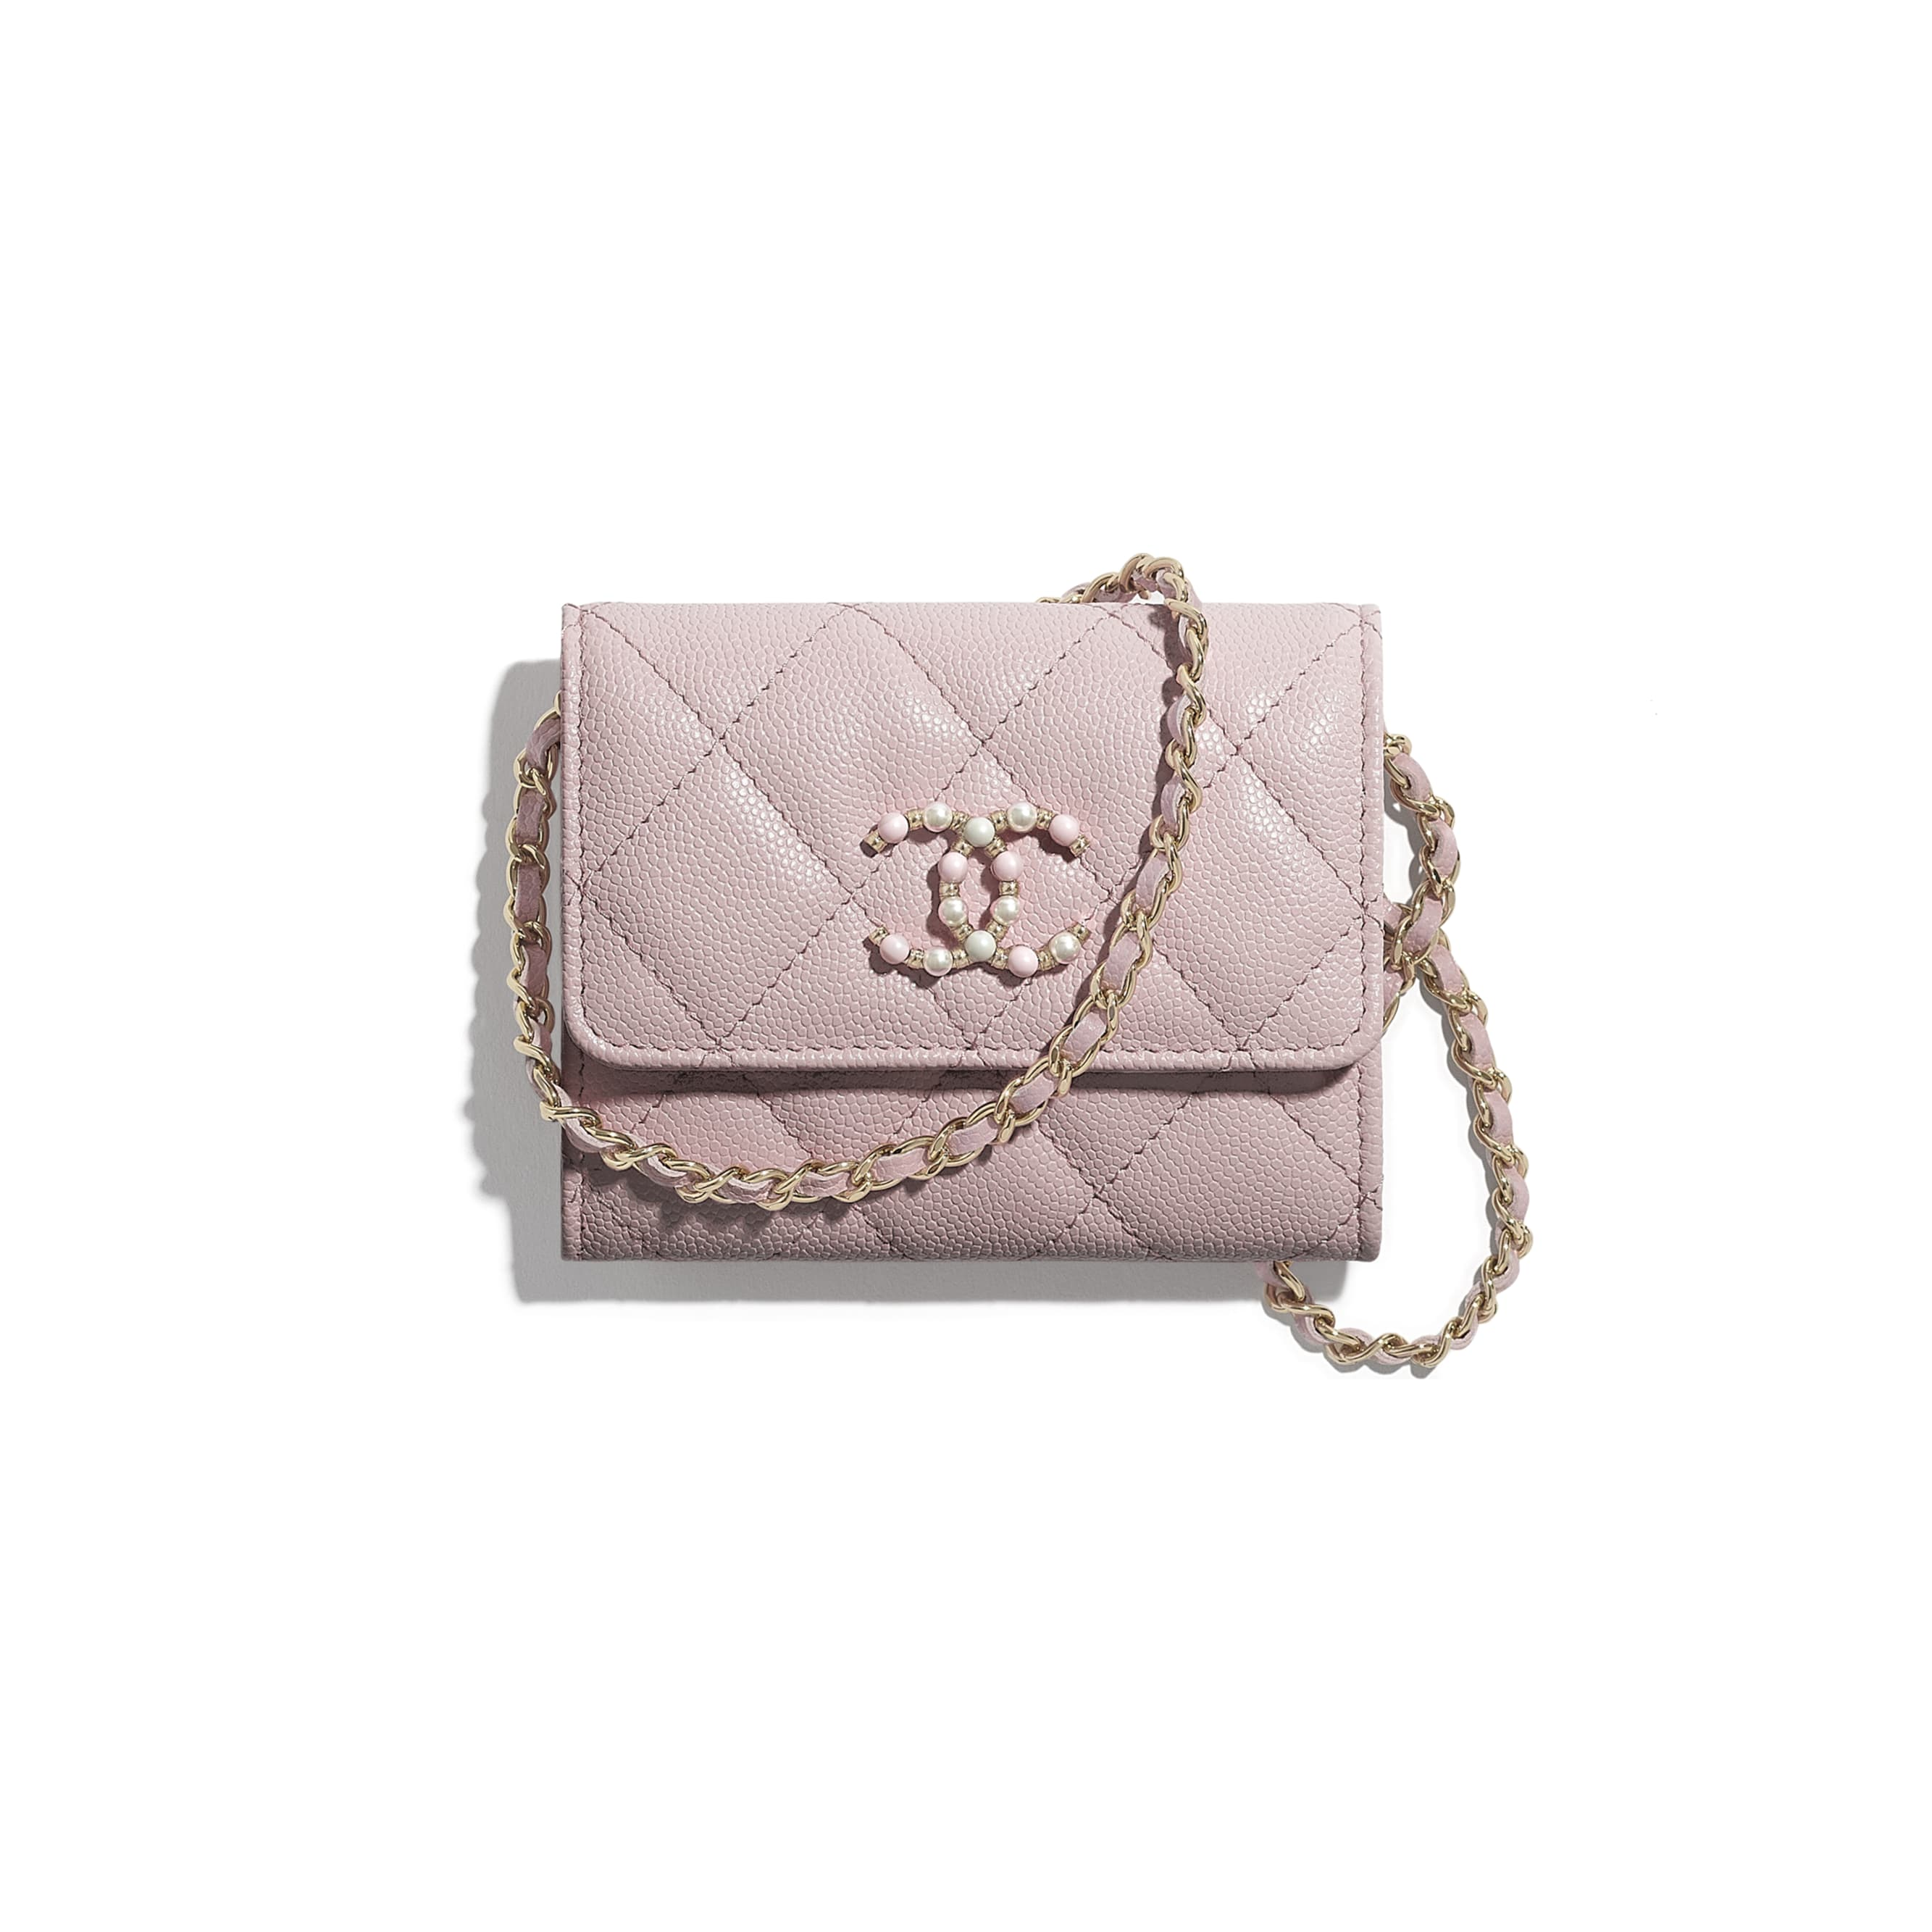 Flap Coin Purse with Chain - Light Pink - Grained Calfskin & Gold-Tone Metal - CHANEL - Default view - see standard sized version